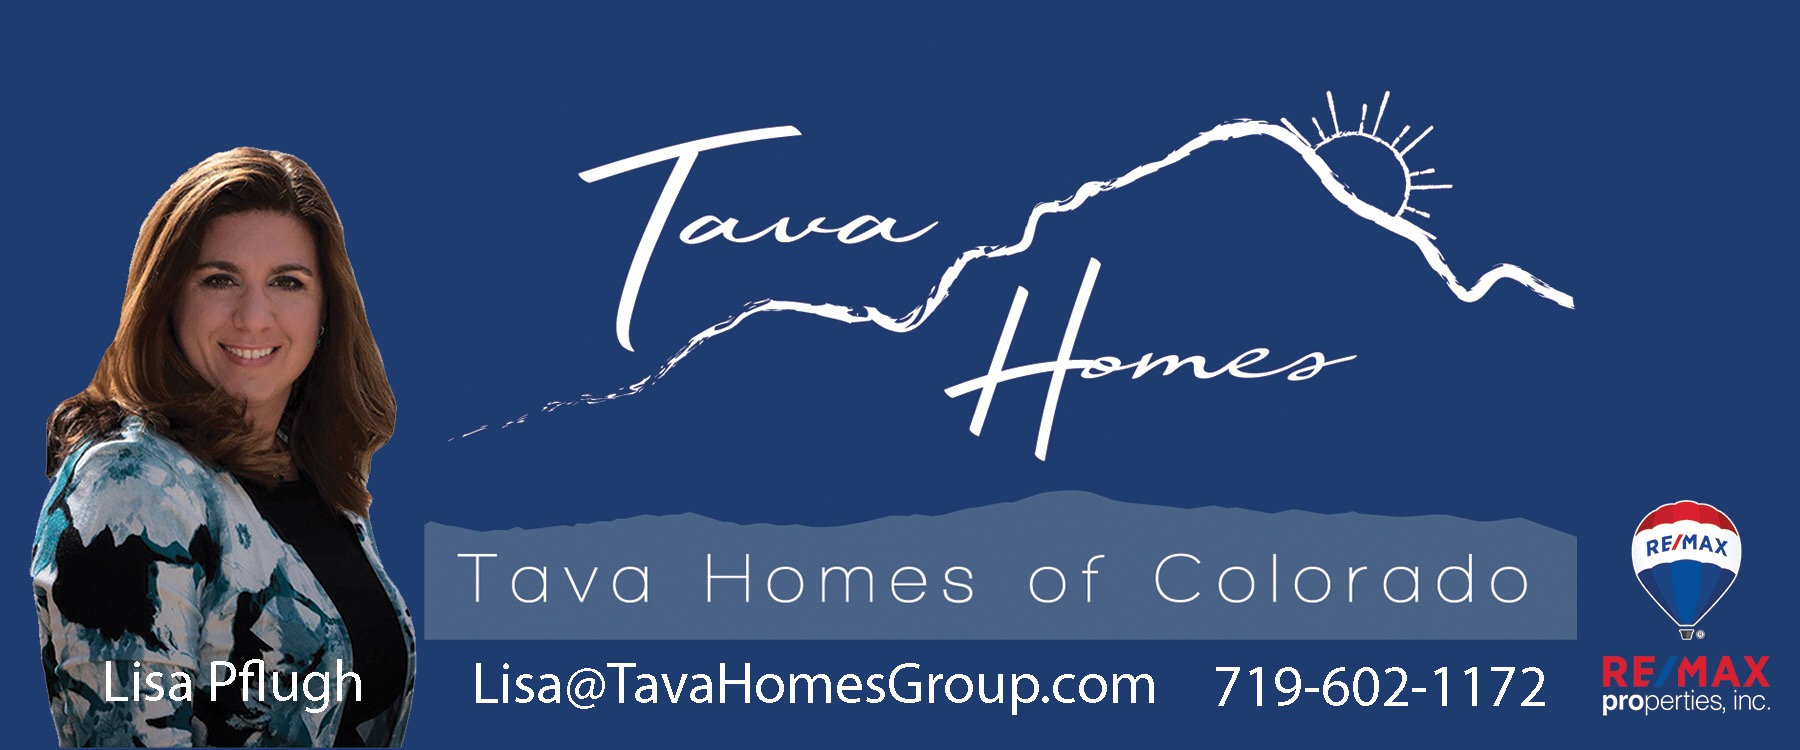 Breakfast and Bloody Mary Send Off Sponsor - Tava Homes of Colorado - Logo